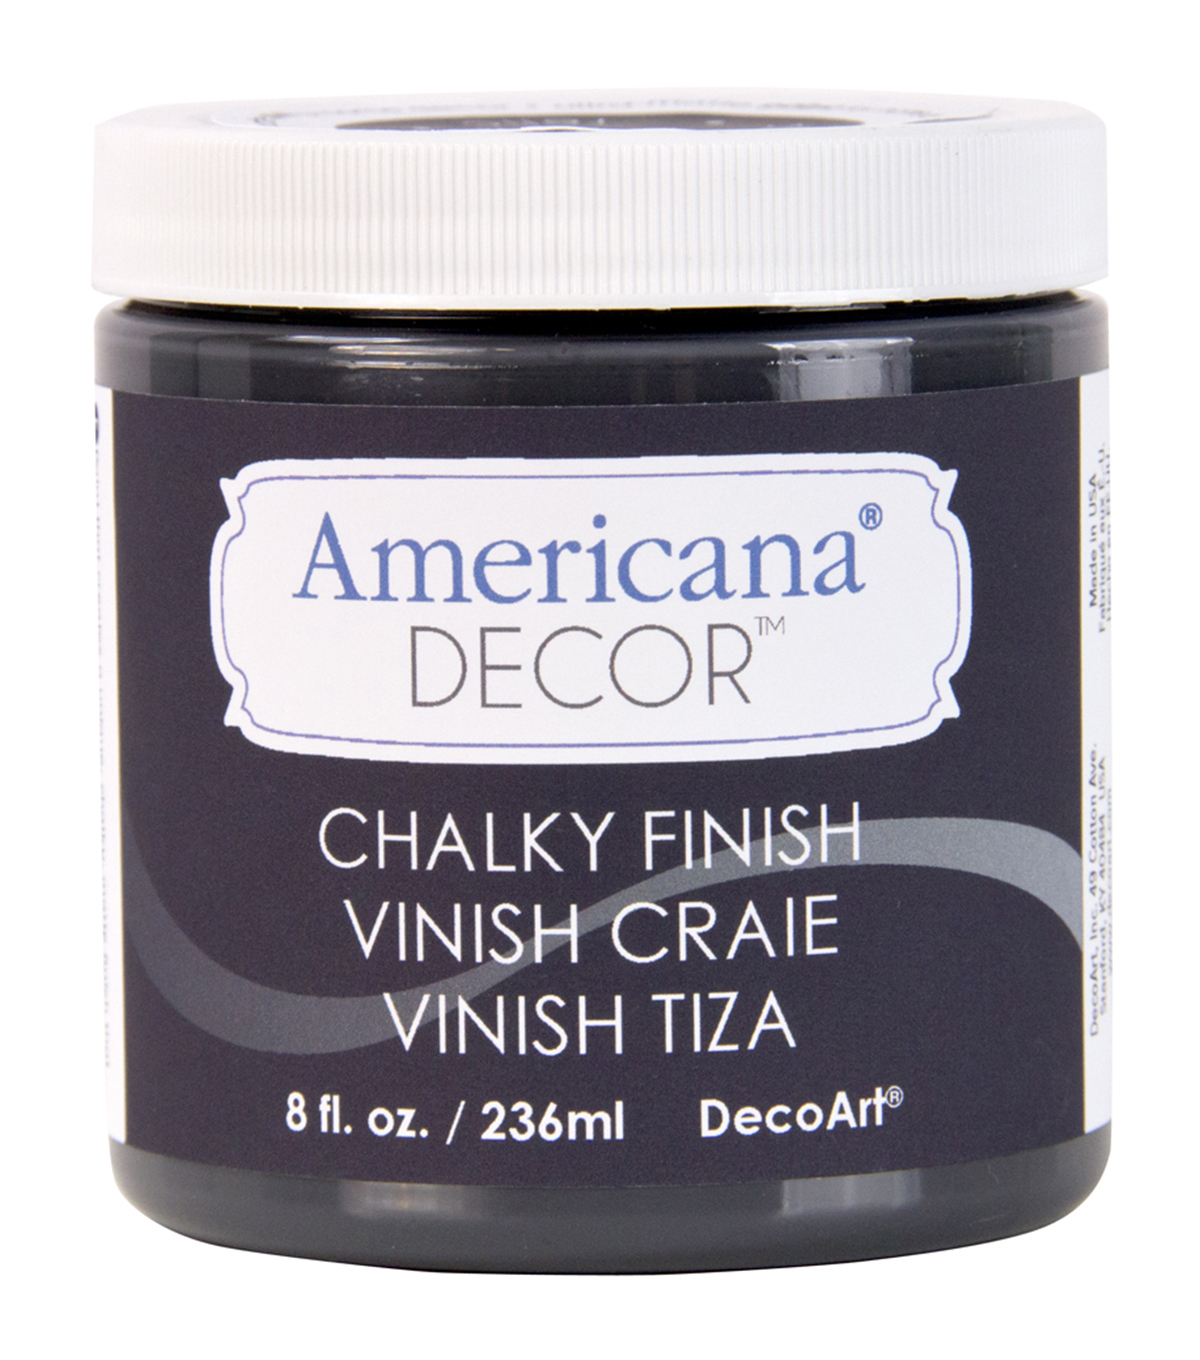 DecoArt Americana Chalky Finish Paint 8oz, Relic